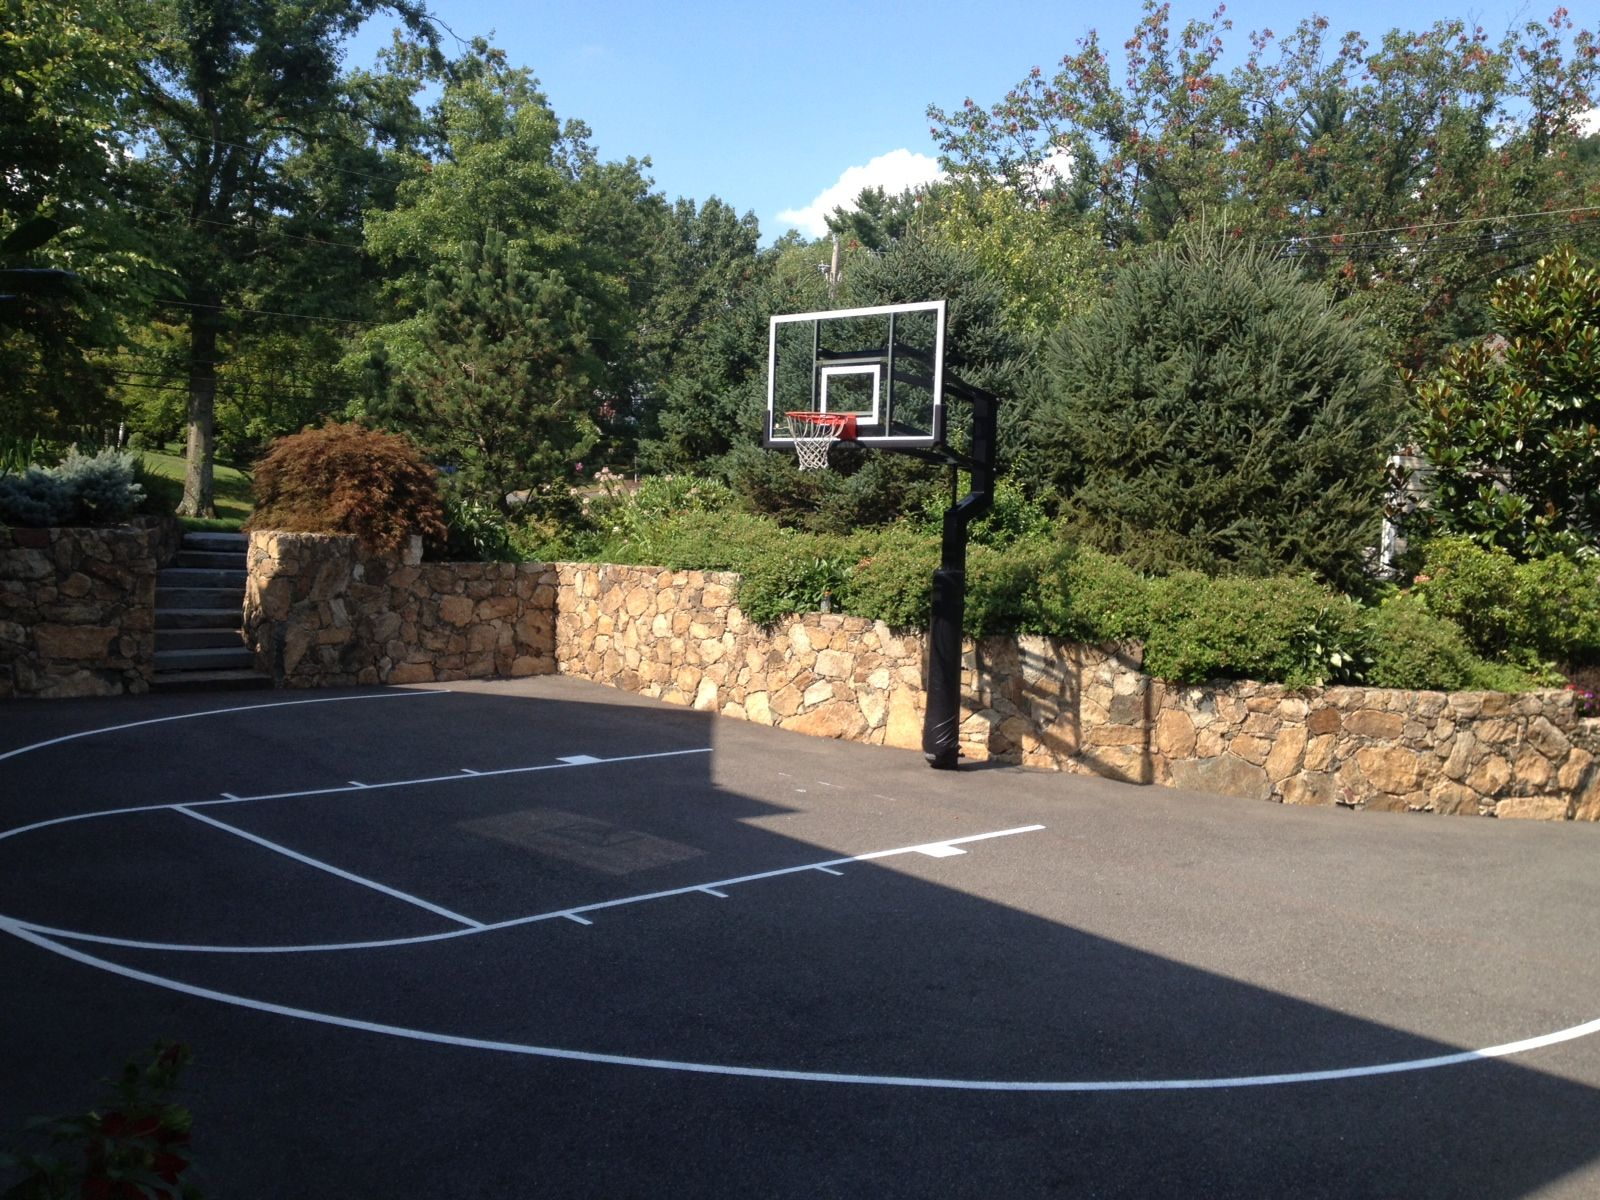 Having A Basketball Hoop In Your Driveway Is Very Cool It Encourages Kids To Play Outside More